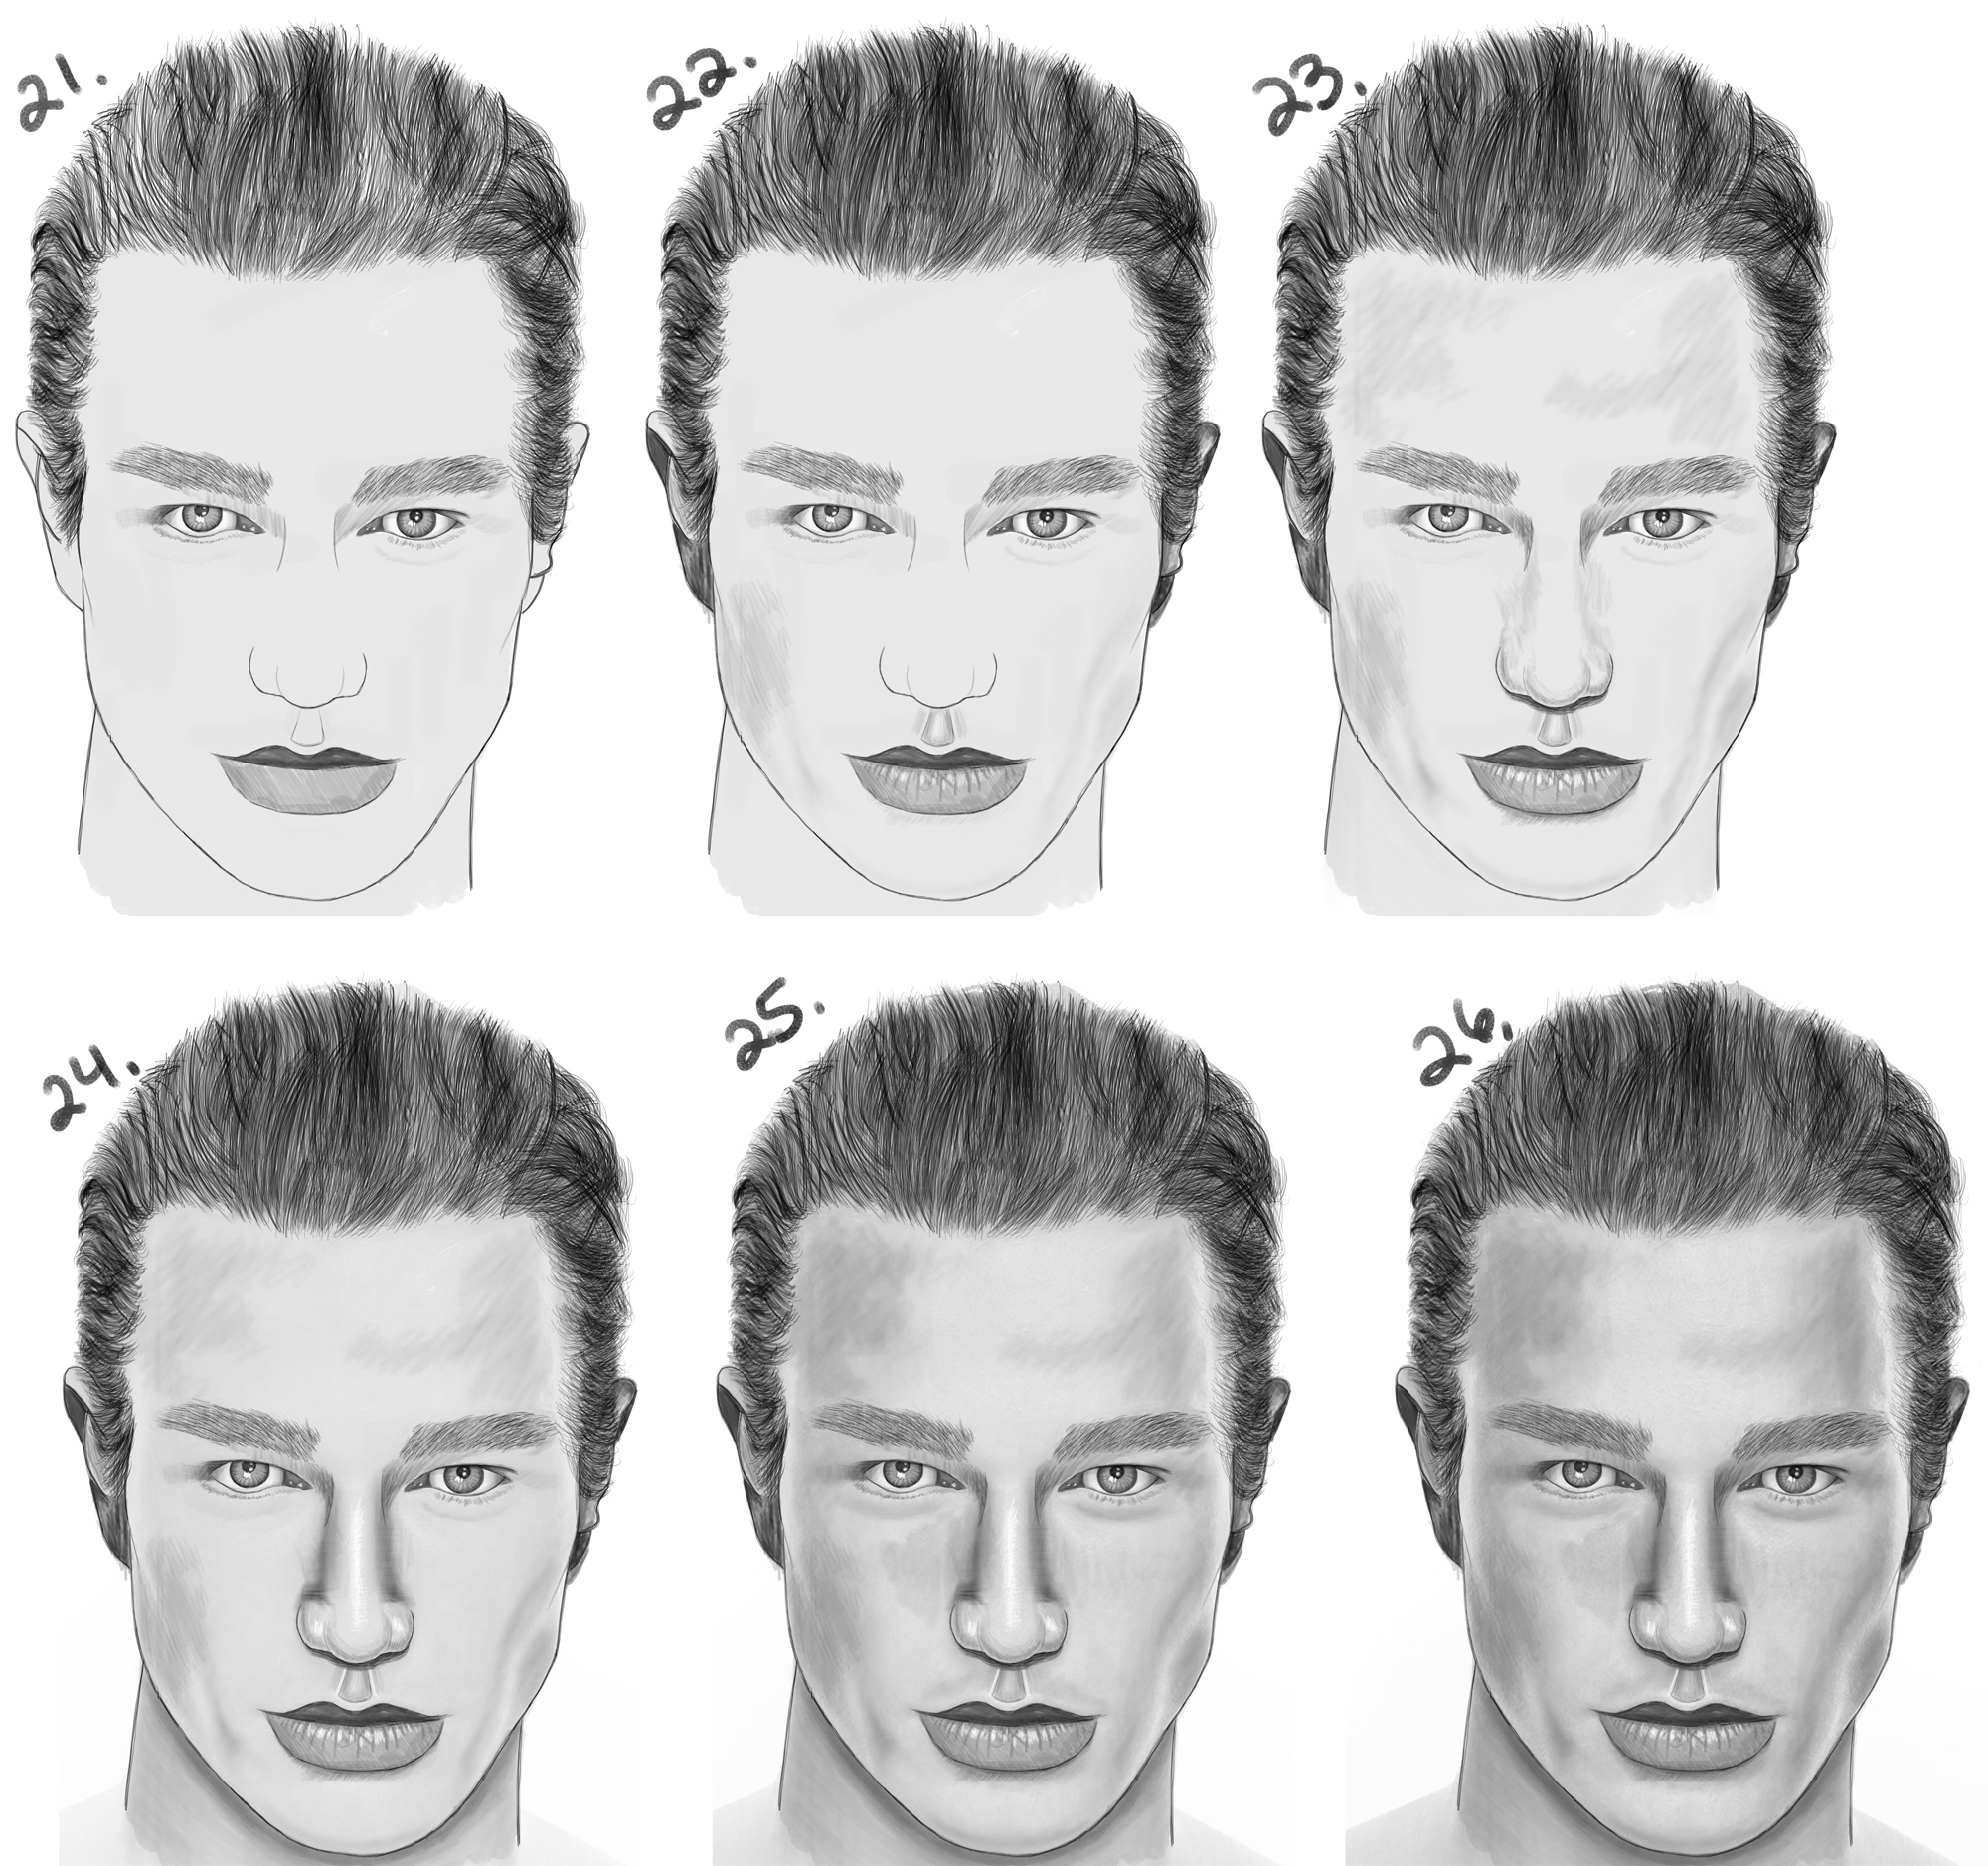 LearnHow to Draw a Handsome Man's Face from the Front View (Male) Simple Steps Drawing Lesson for Beginners